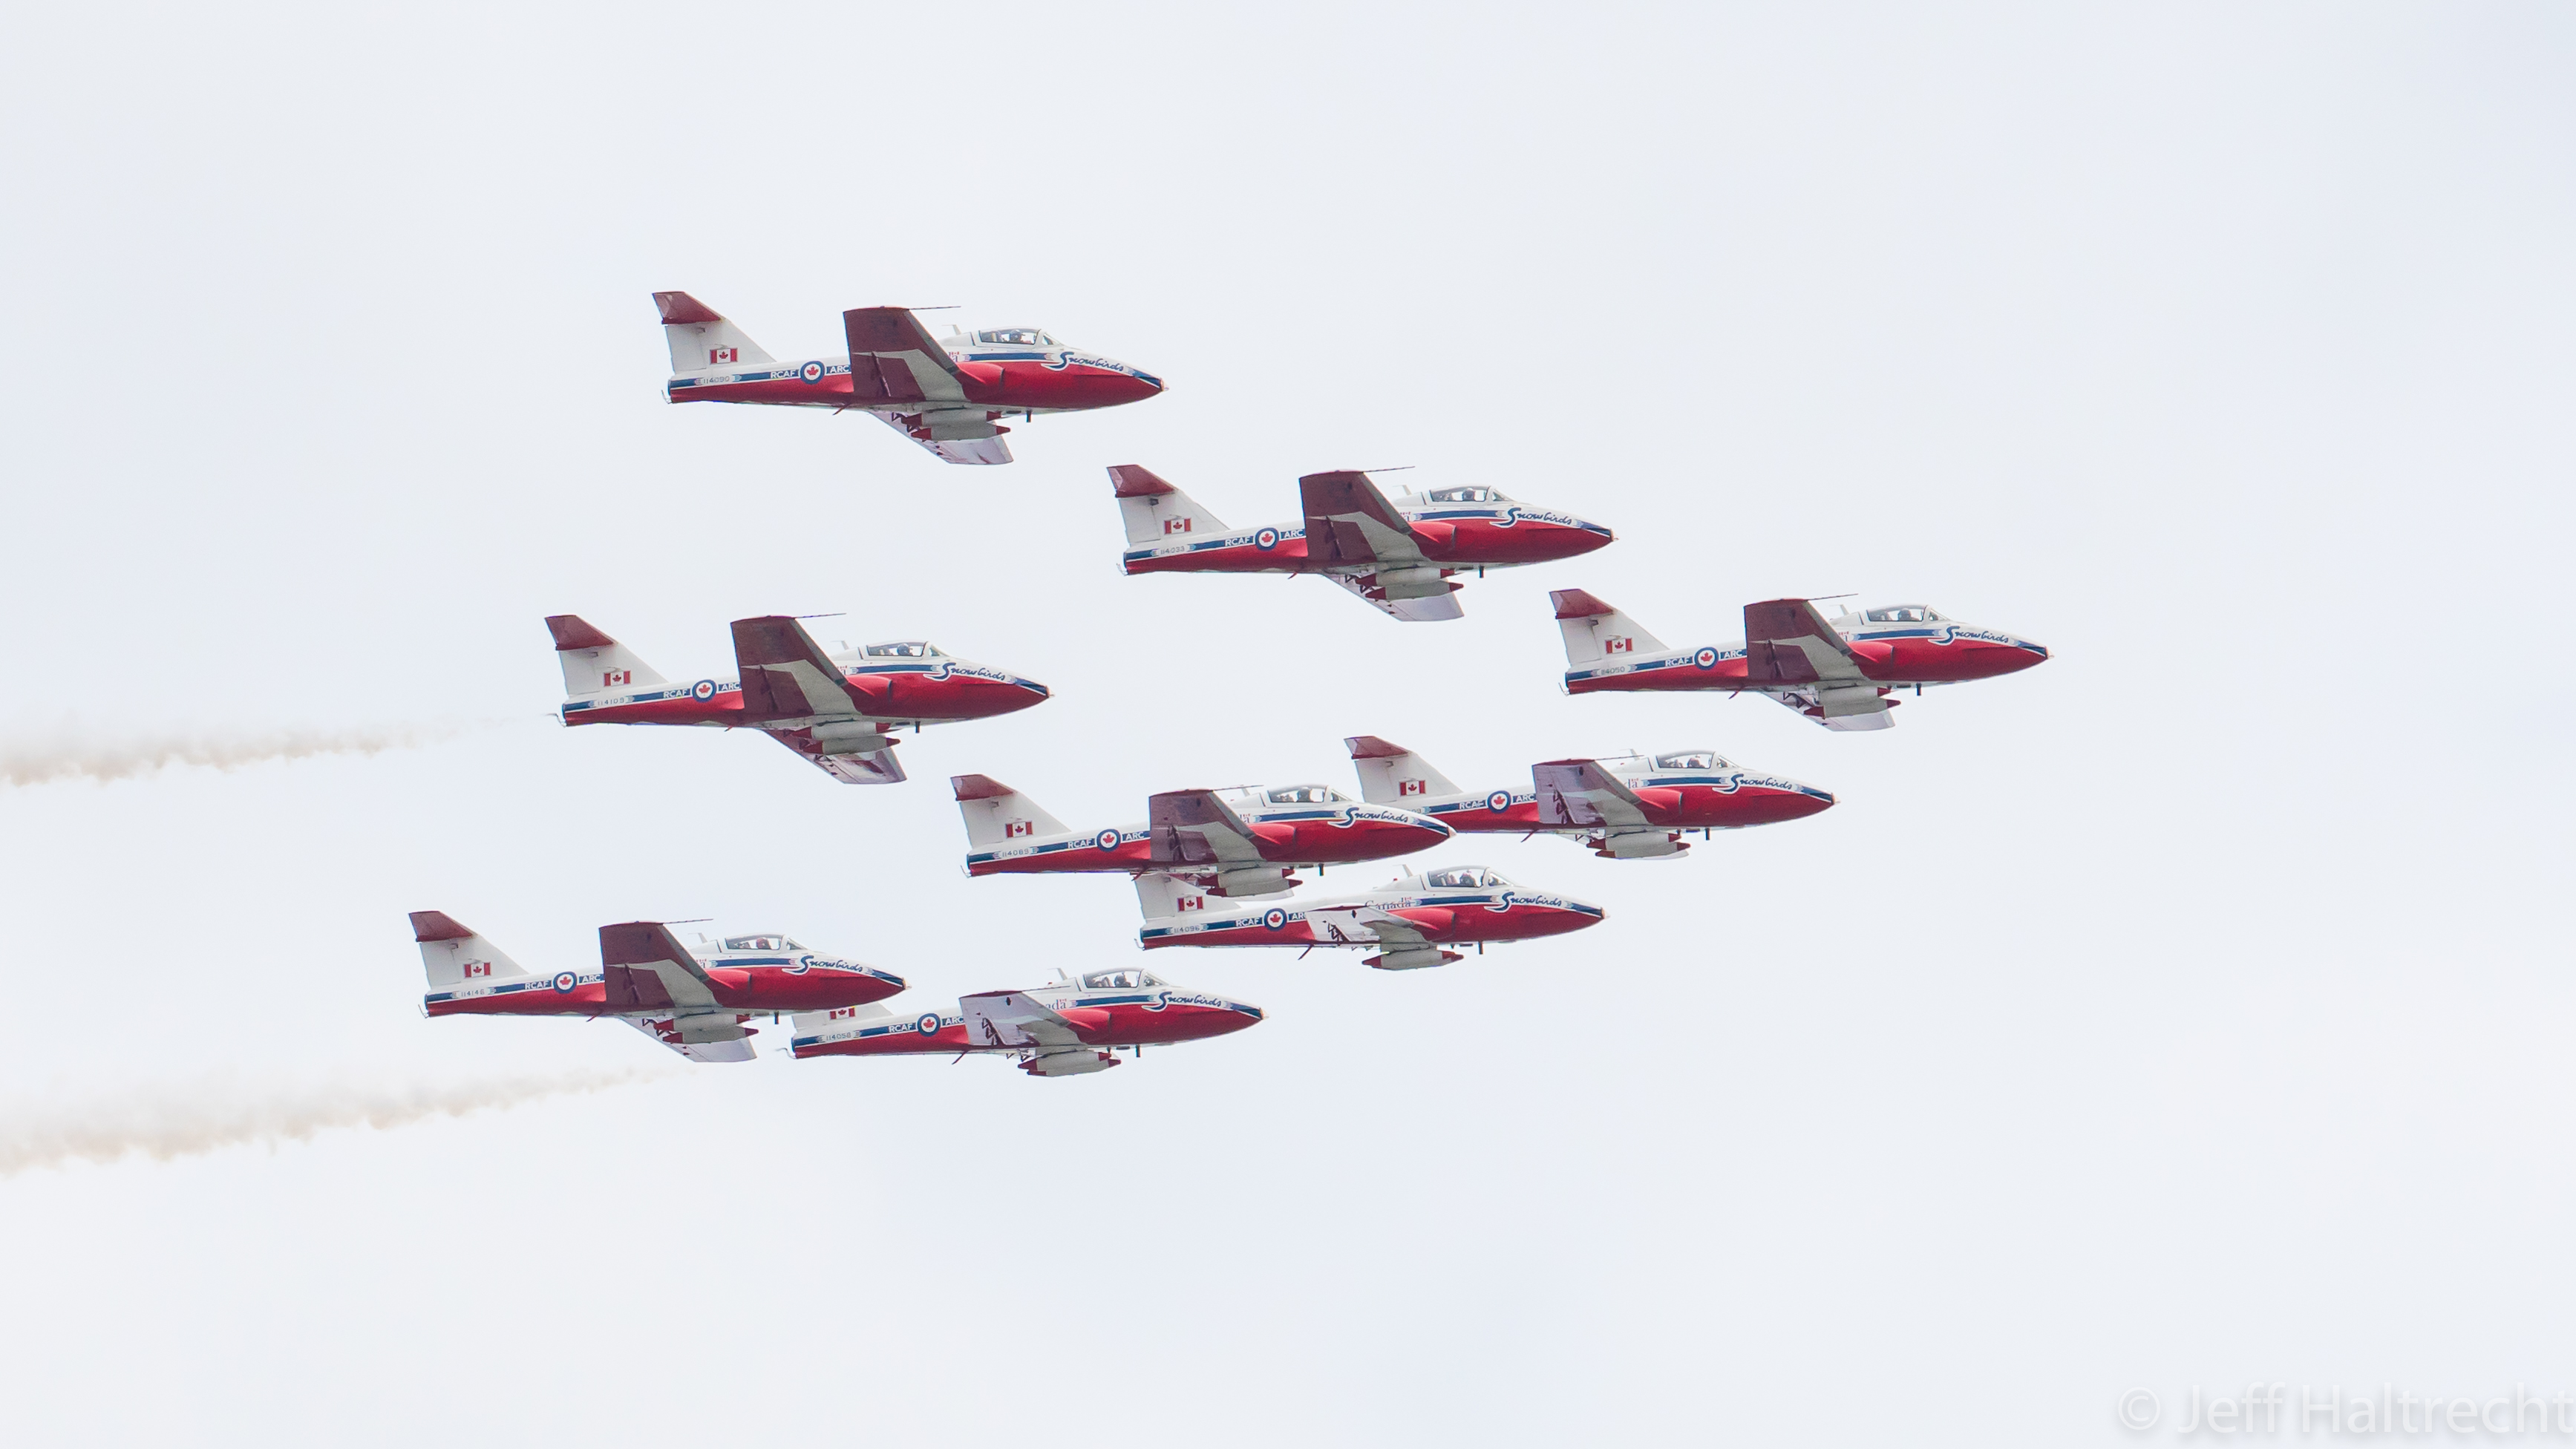 canadian forces snowbirds #operationinspiration cross canada tour